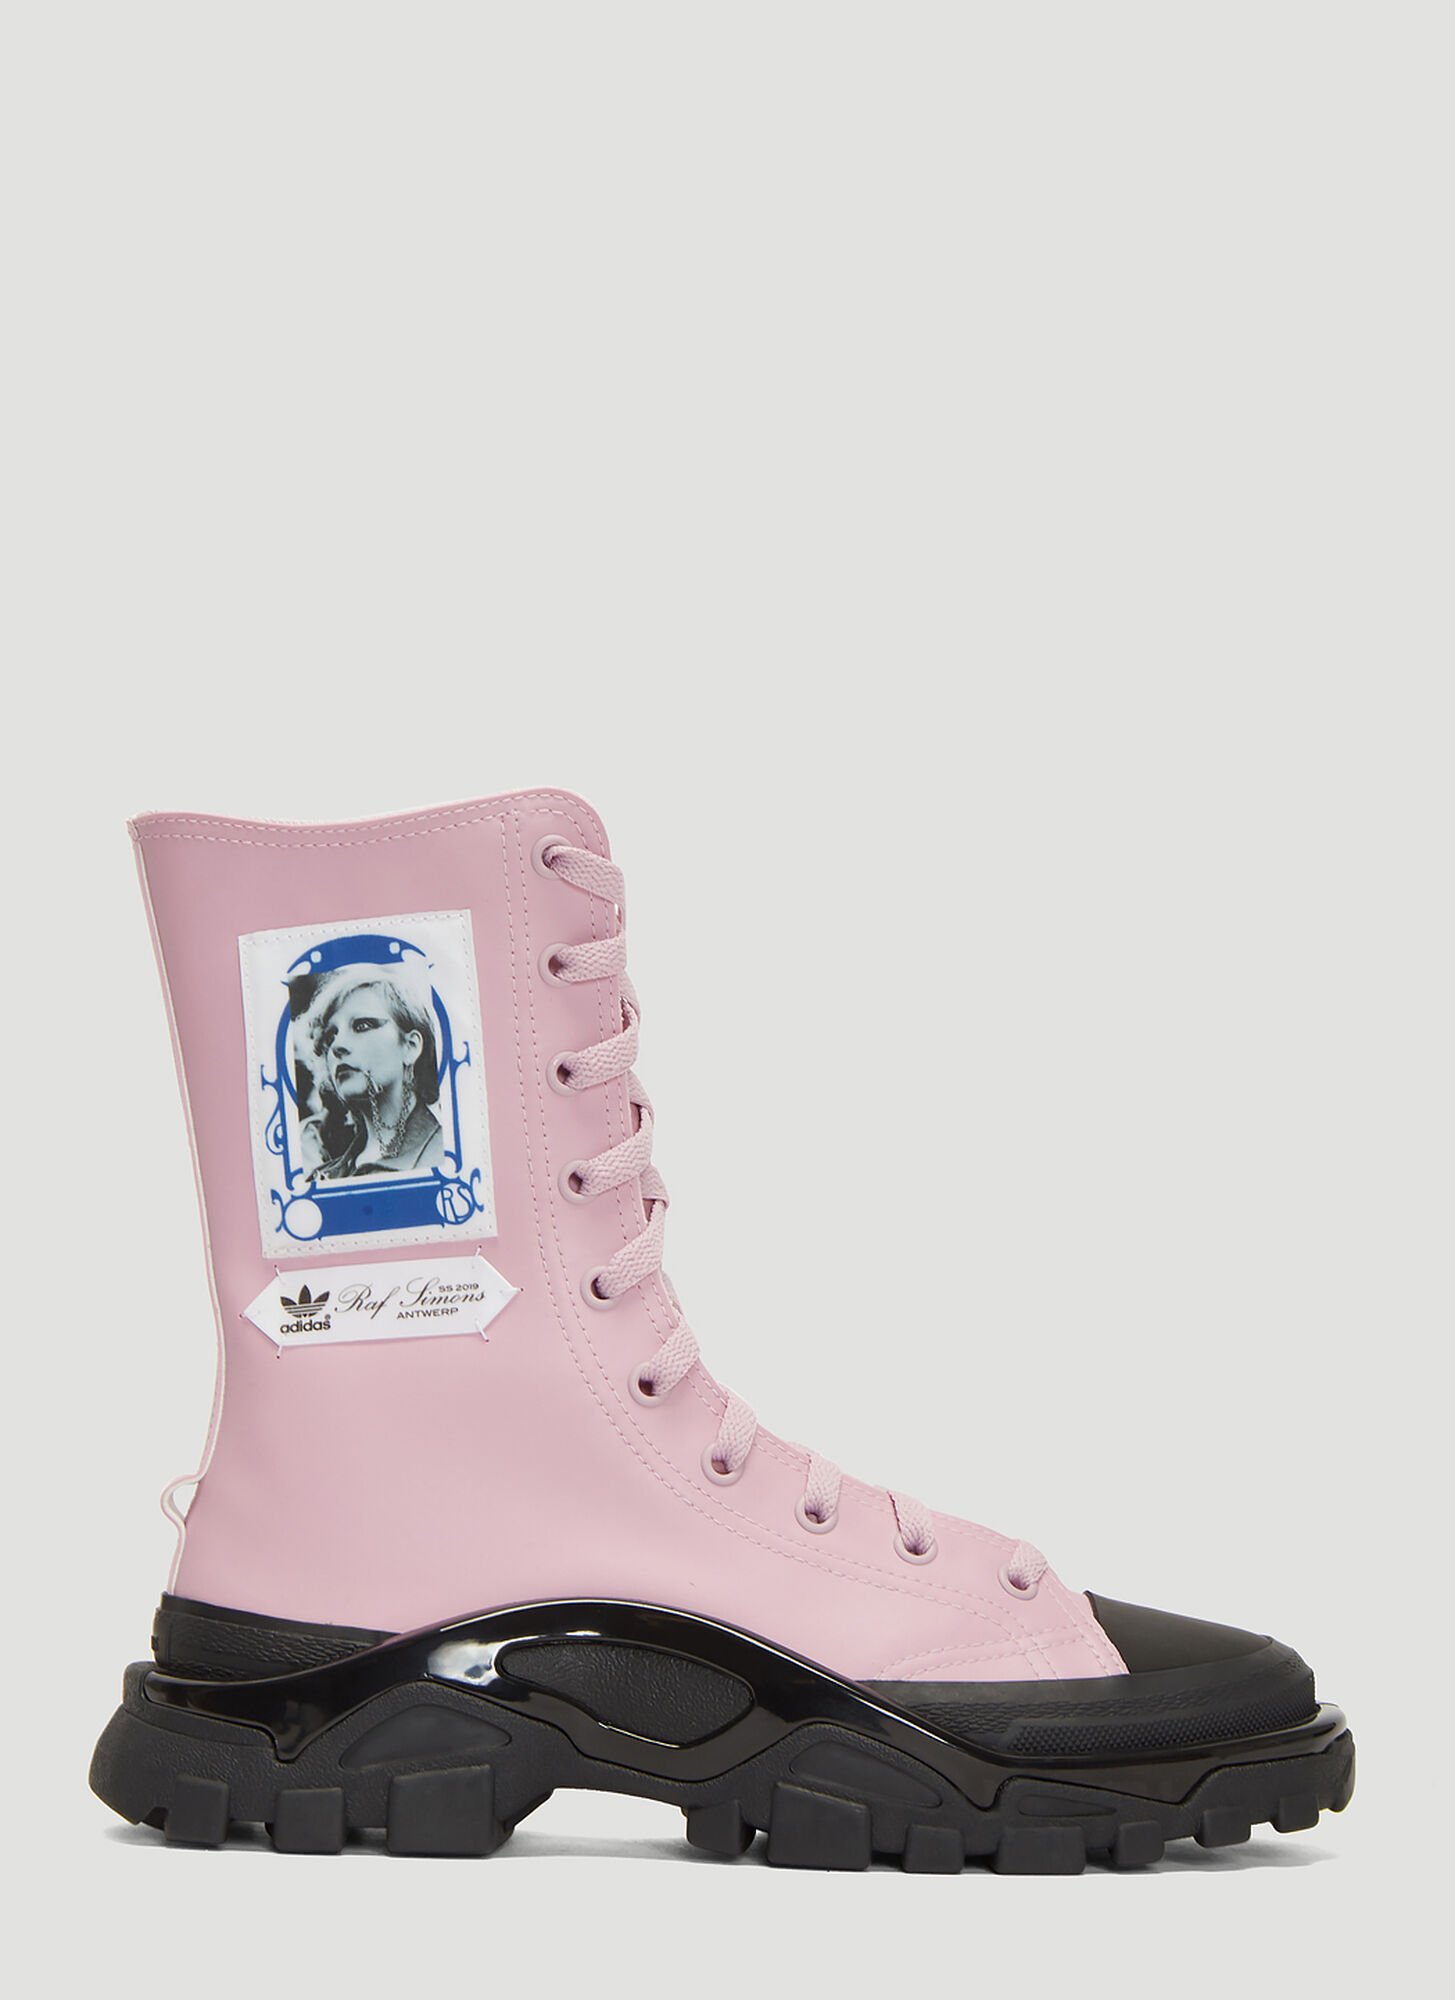 adidas by Raf Simons Detroit Boot Sneakers in Pink